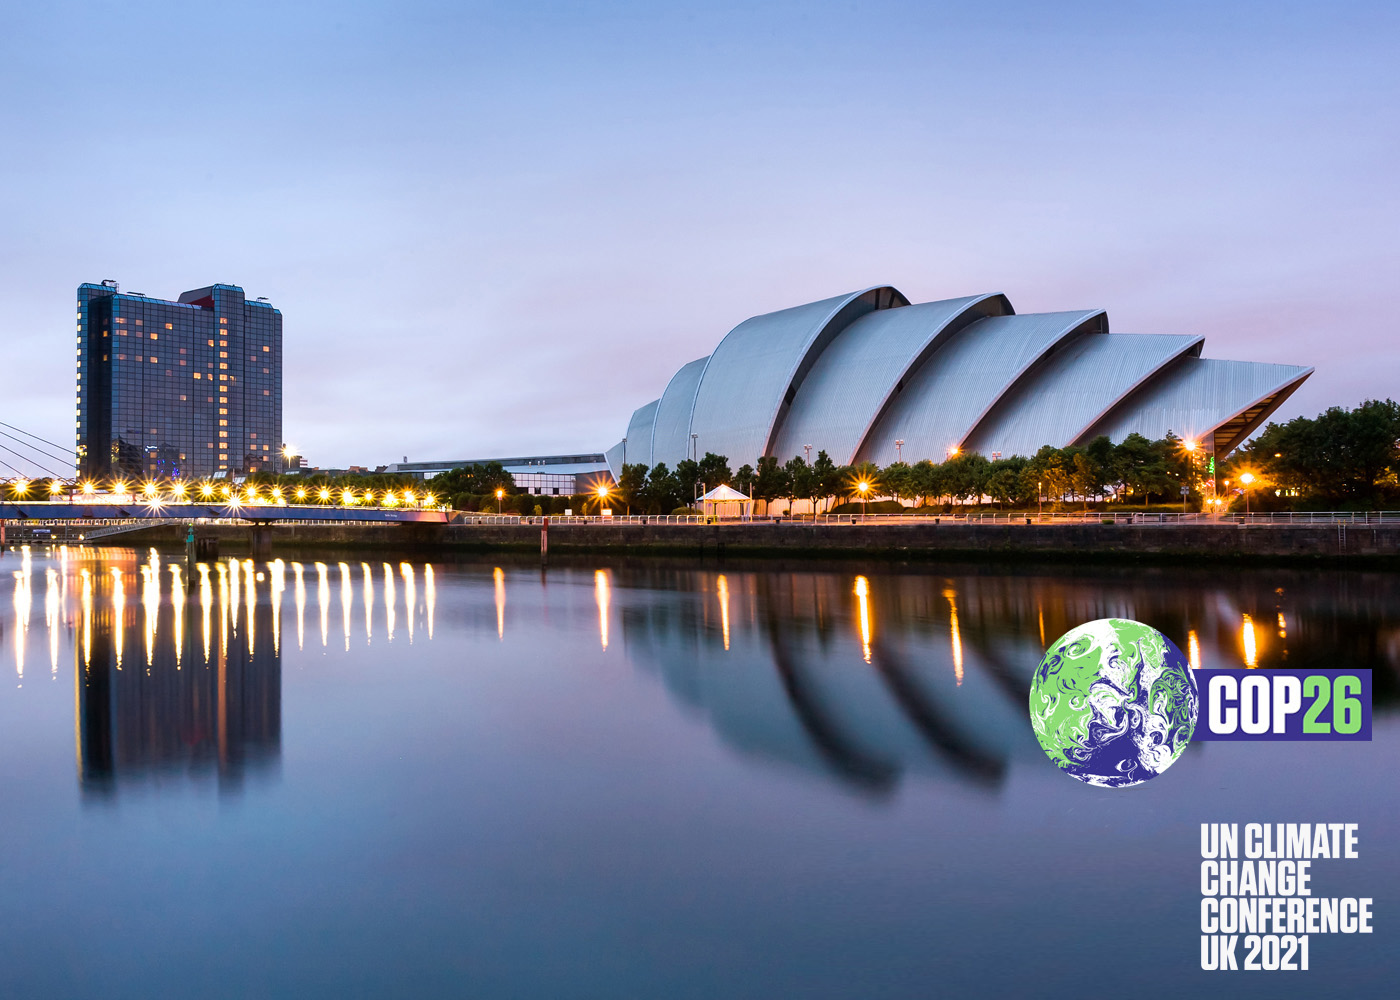 Momentum builds for COP26 climate conference in Glasgow